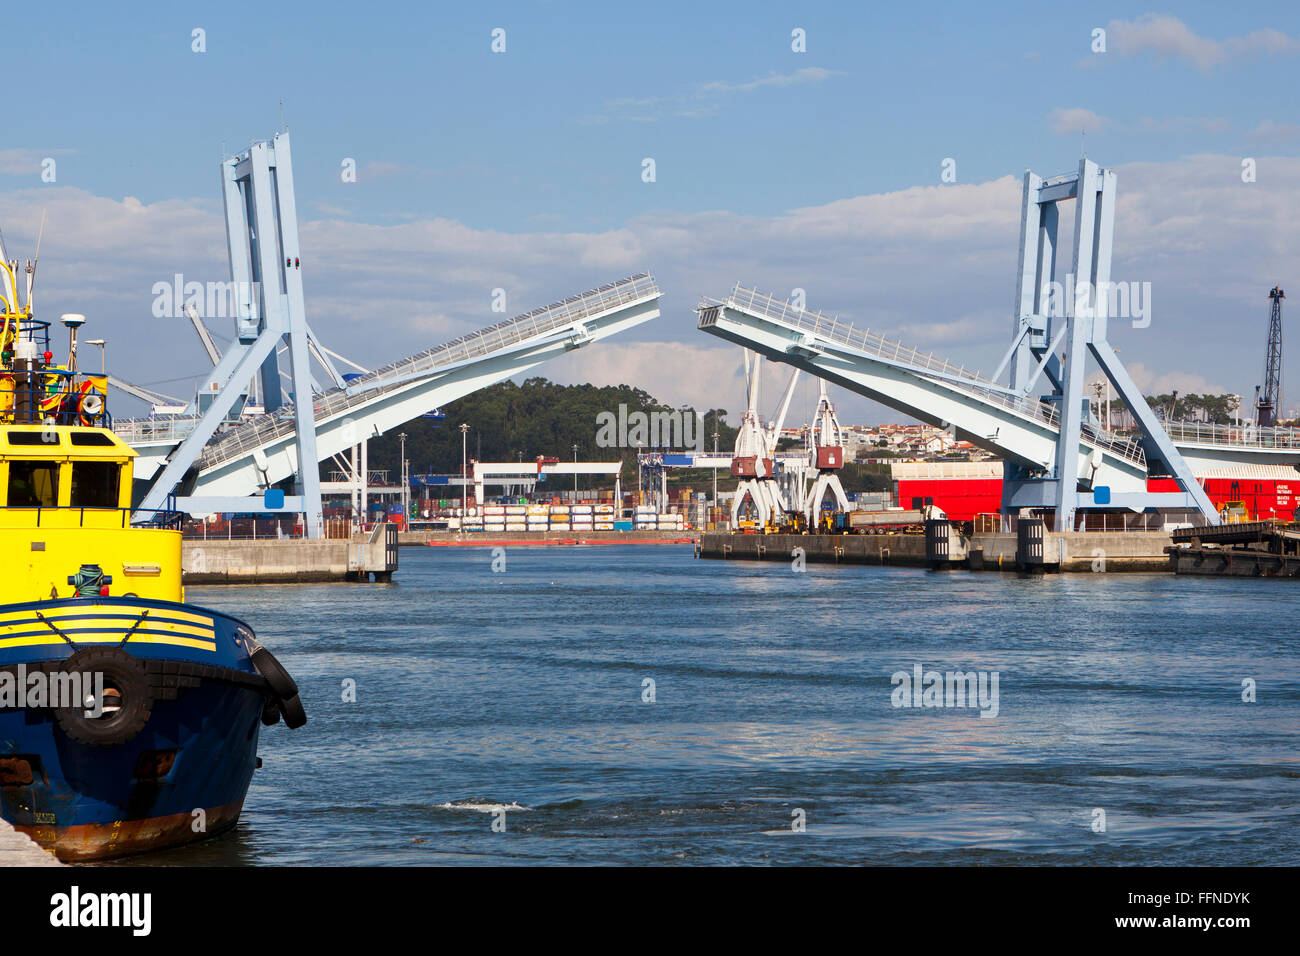 Commercial Dock with a Drawbridge - Stock Image